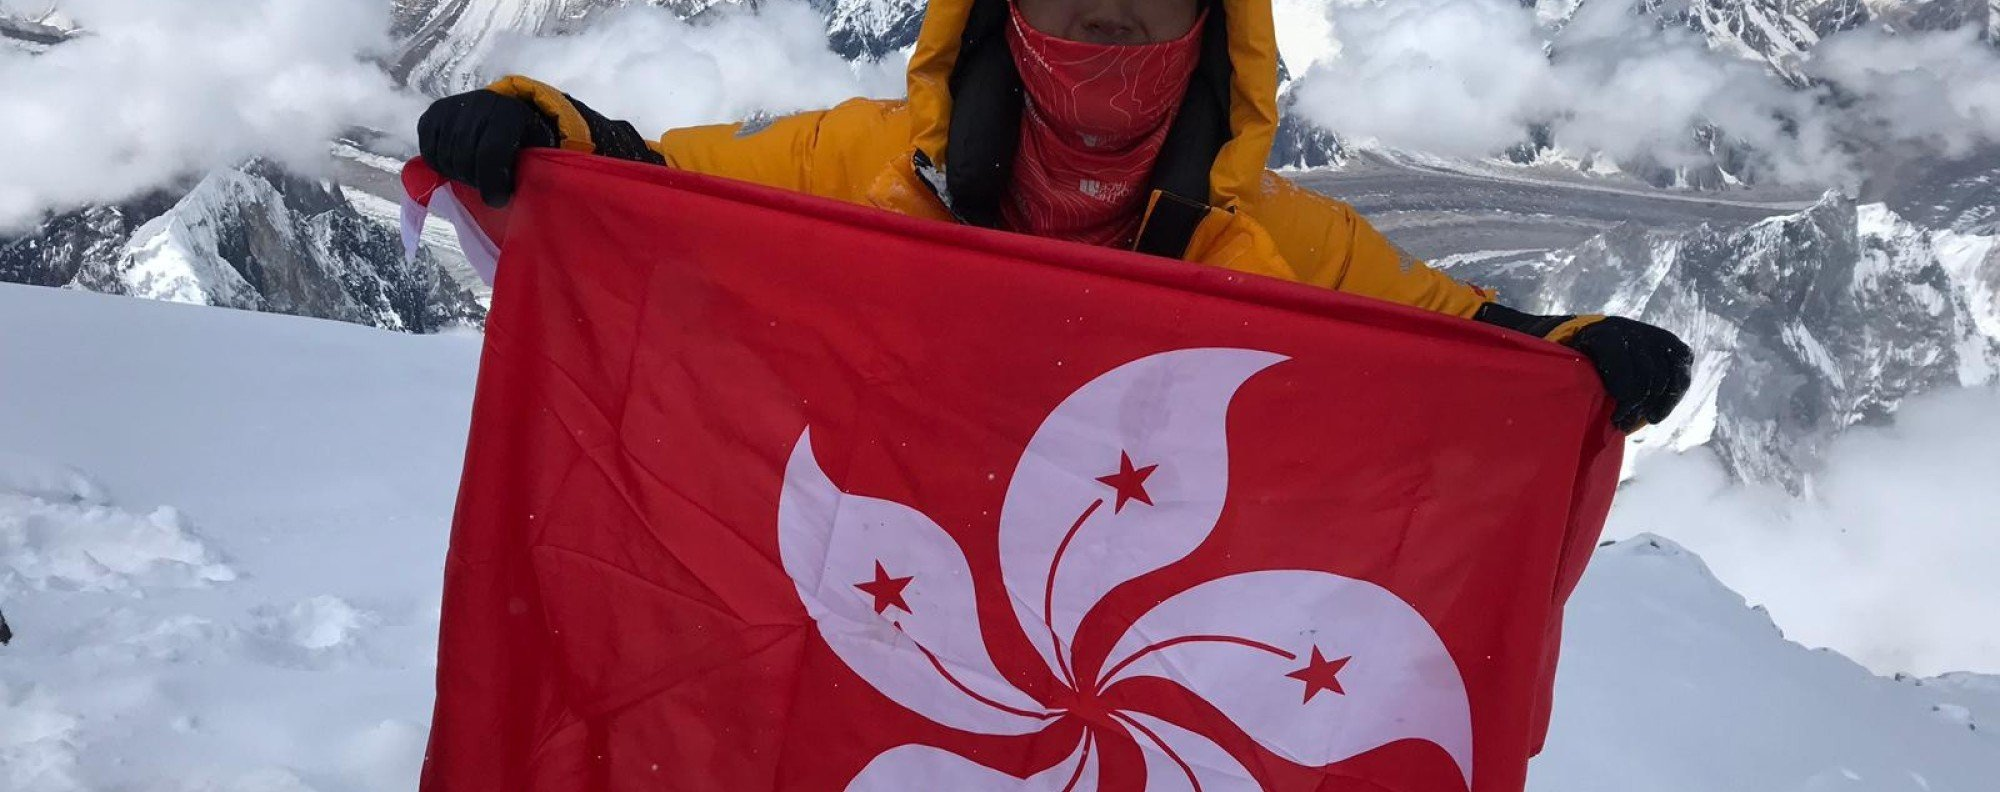 Benjamin Chan becomes the youngest person to climb Broad Peak without oxygen. He is the youngest Hongkonger to climb Everest too. Photo: Handout